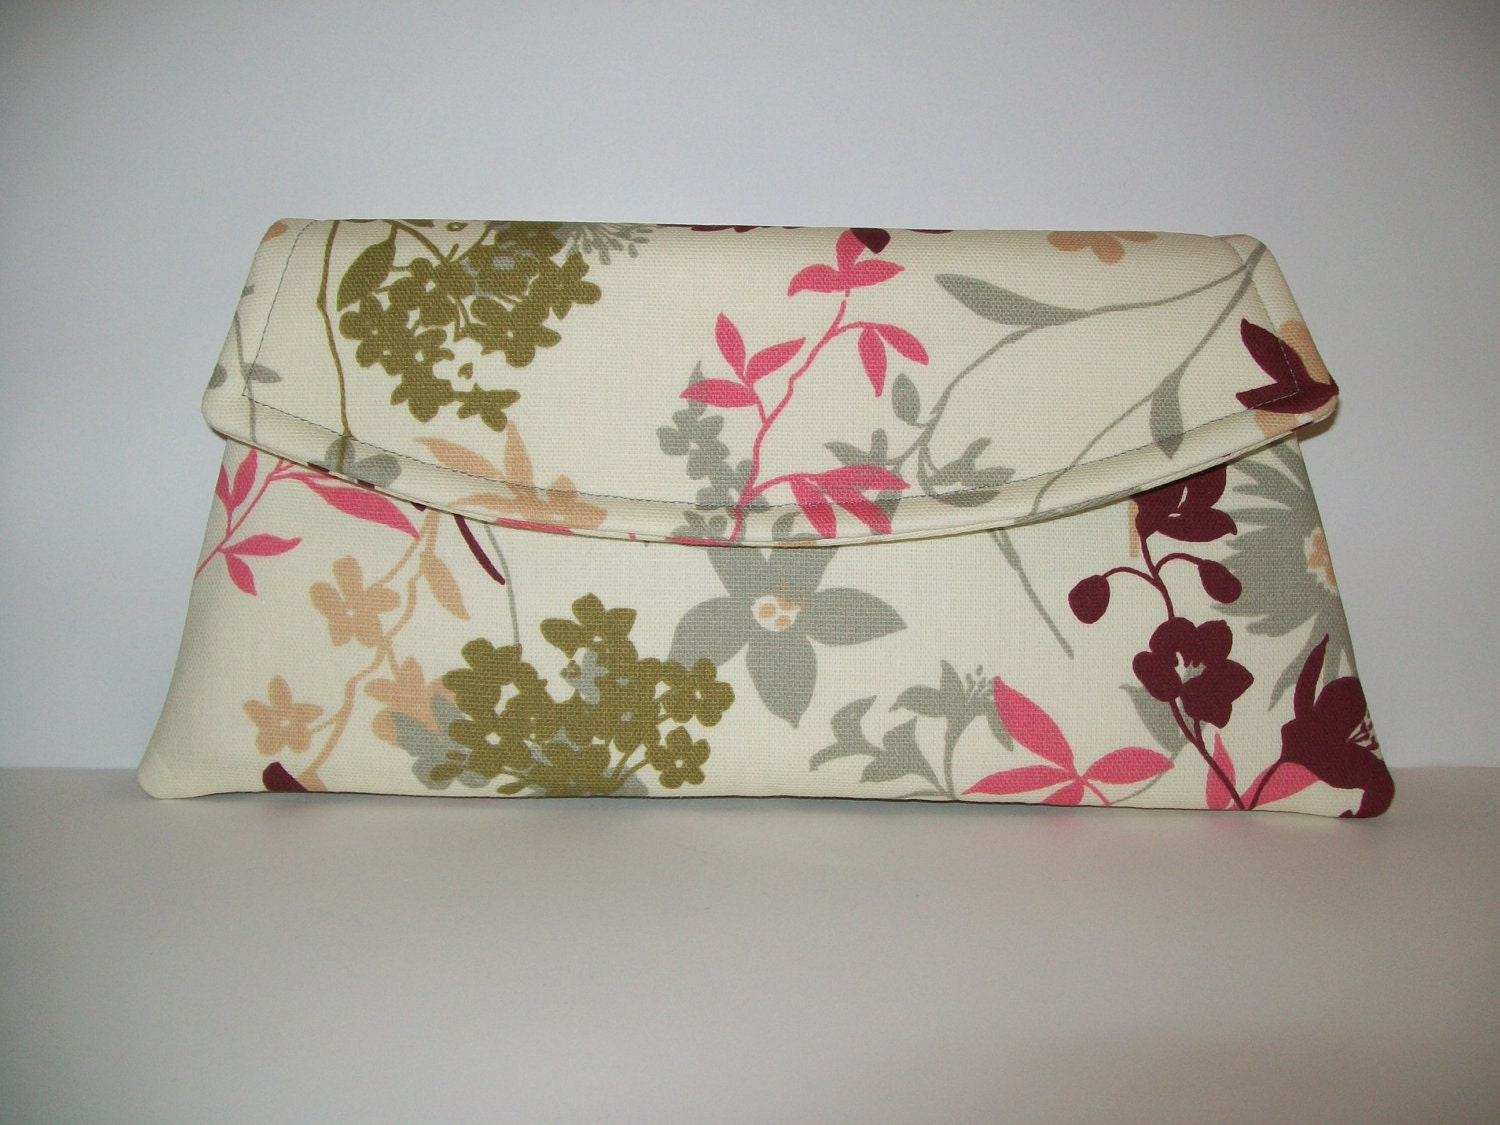 Cream, Gray, Green, Pink, Red Leaves/Floral - Classic Angled Clutch